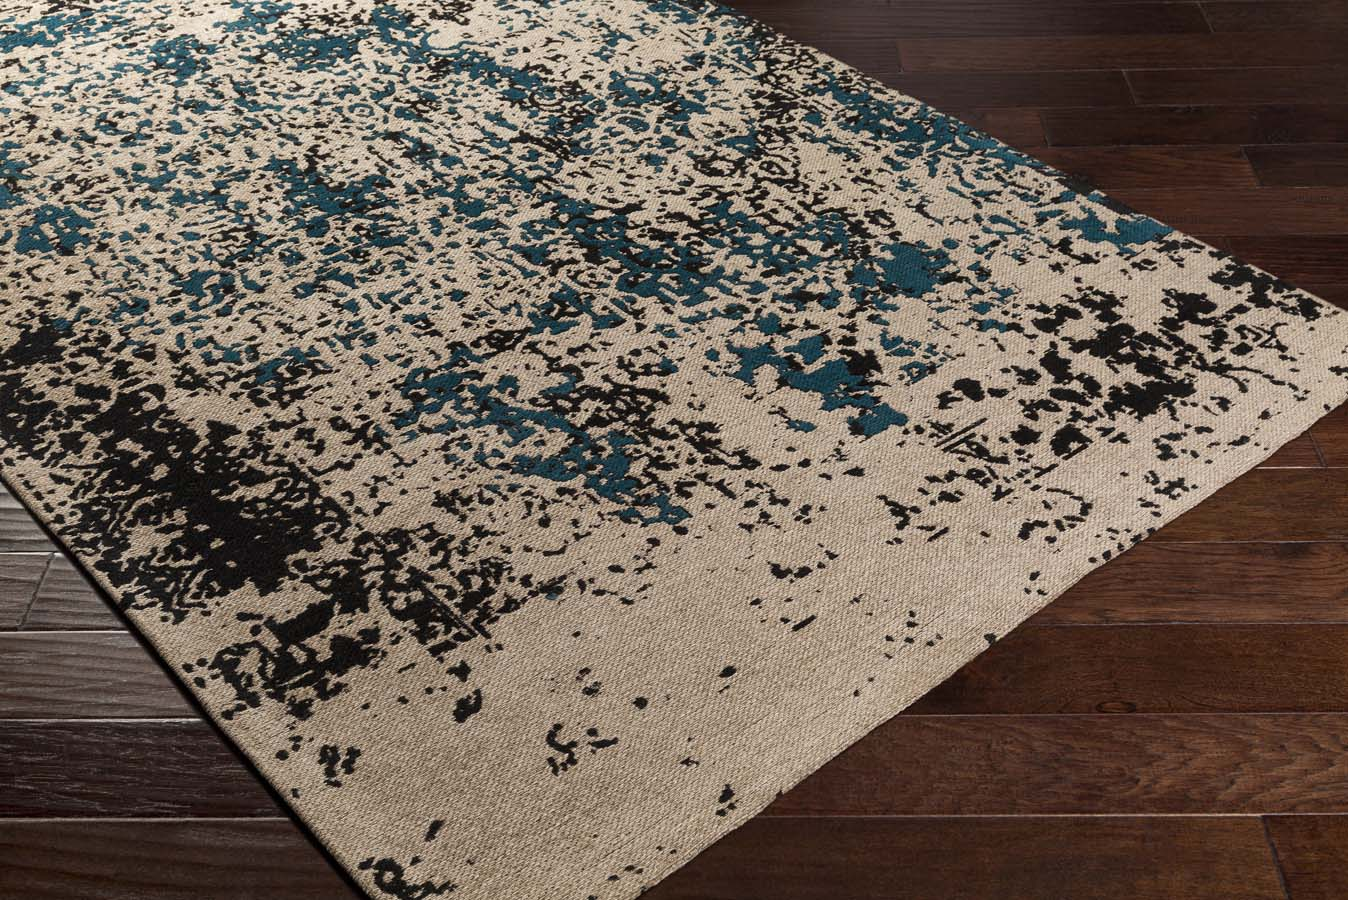 Artistic Weavers Egypt EGT-3076 Lara Dark Teal/Grey Rug